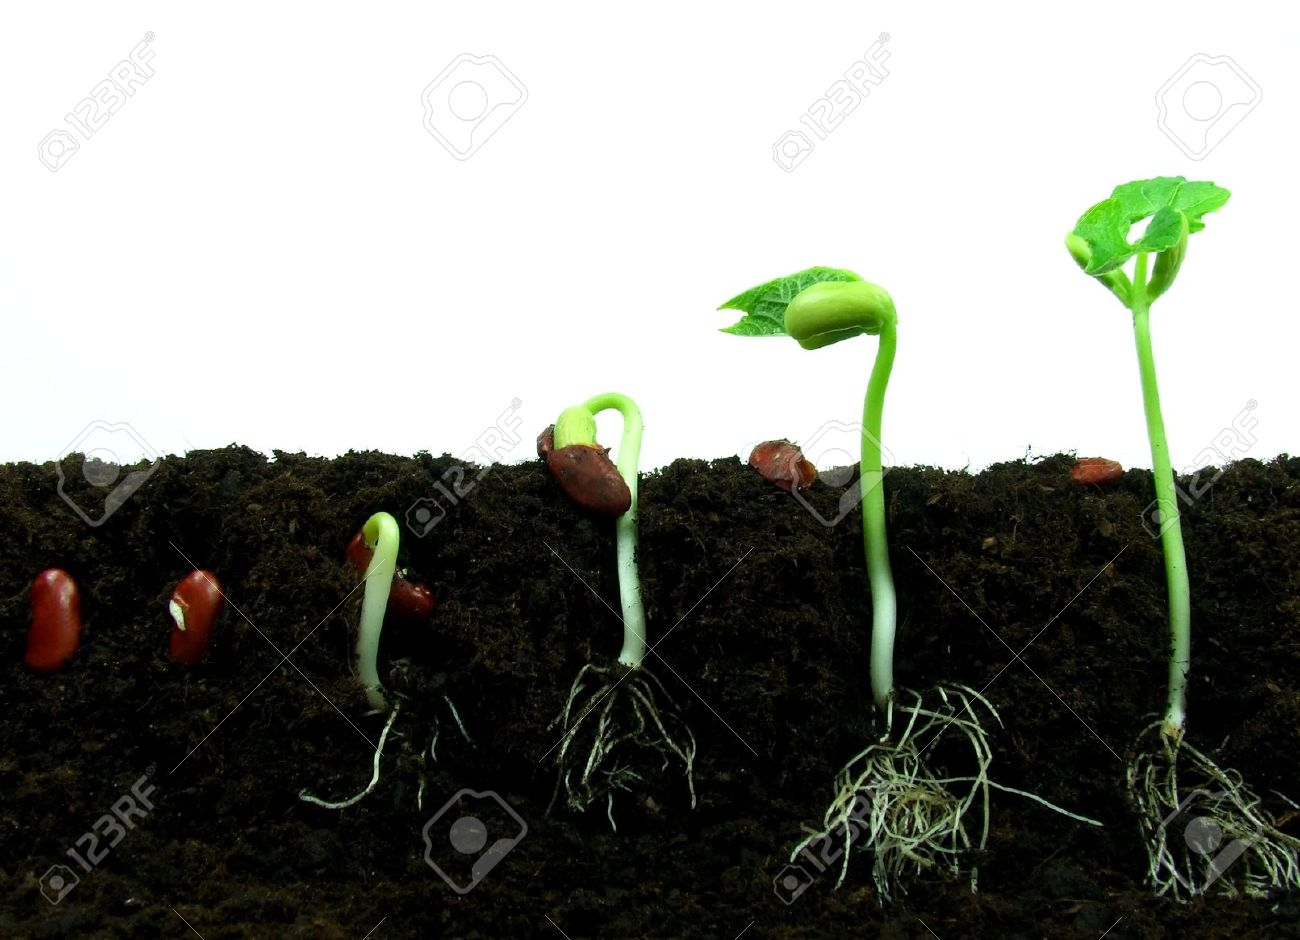 Germination Of Bean Seeds In Sequence Stock Photo, Picture And ...